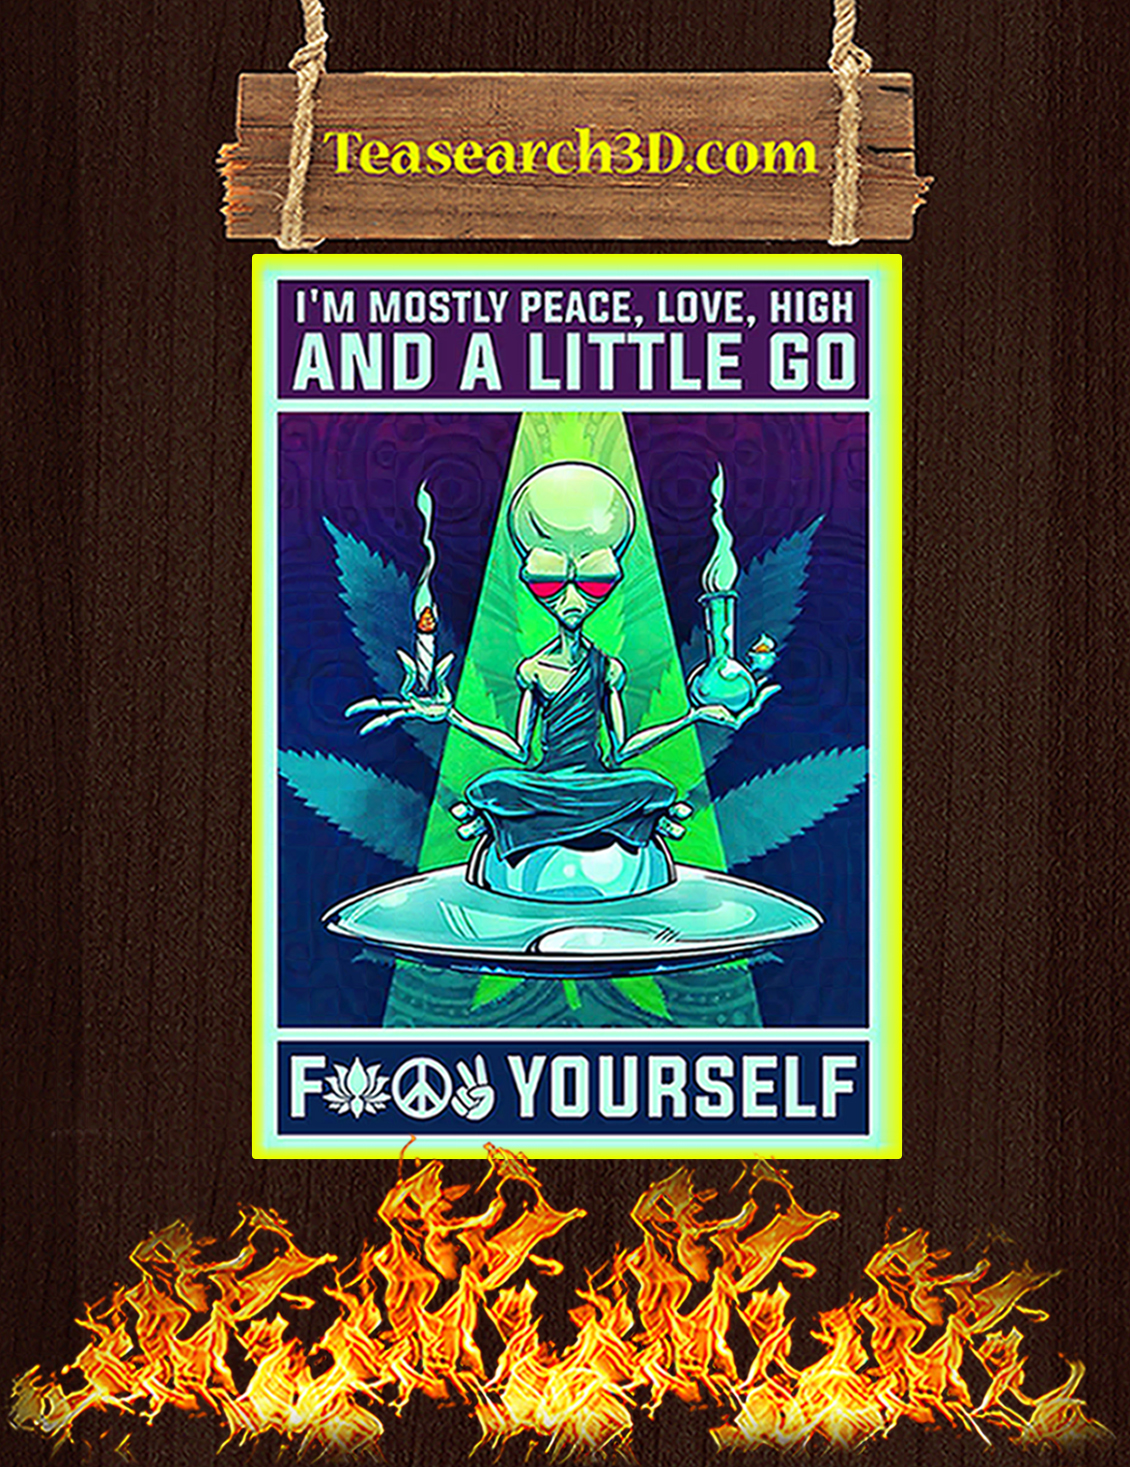 Alien yoga I'm mostly peace love high and a little go fuck yourself poster A3